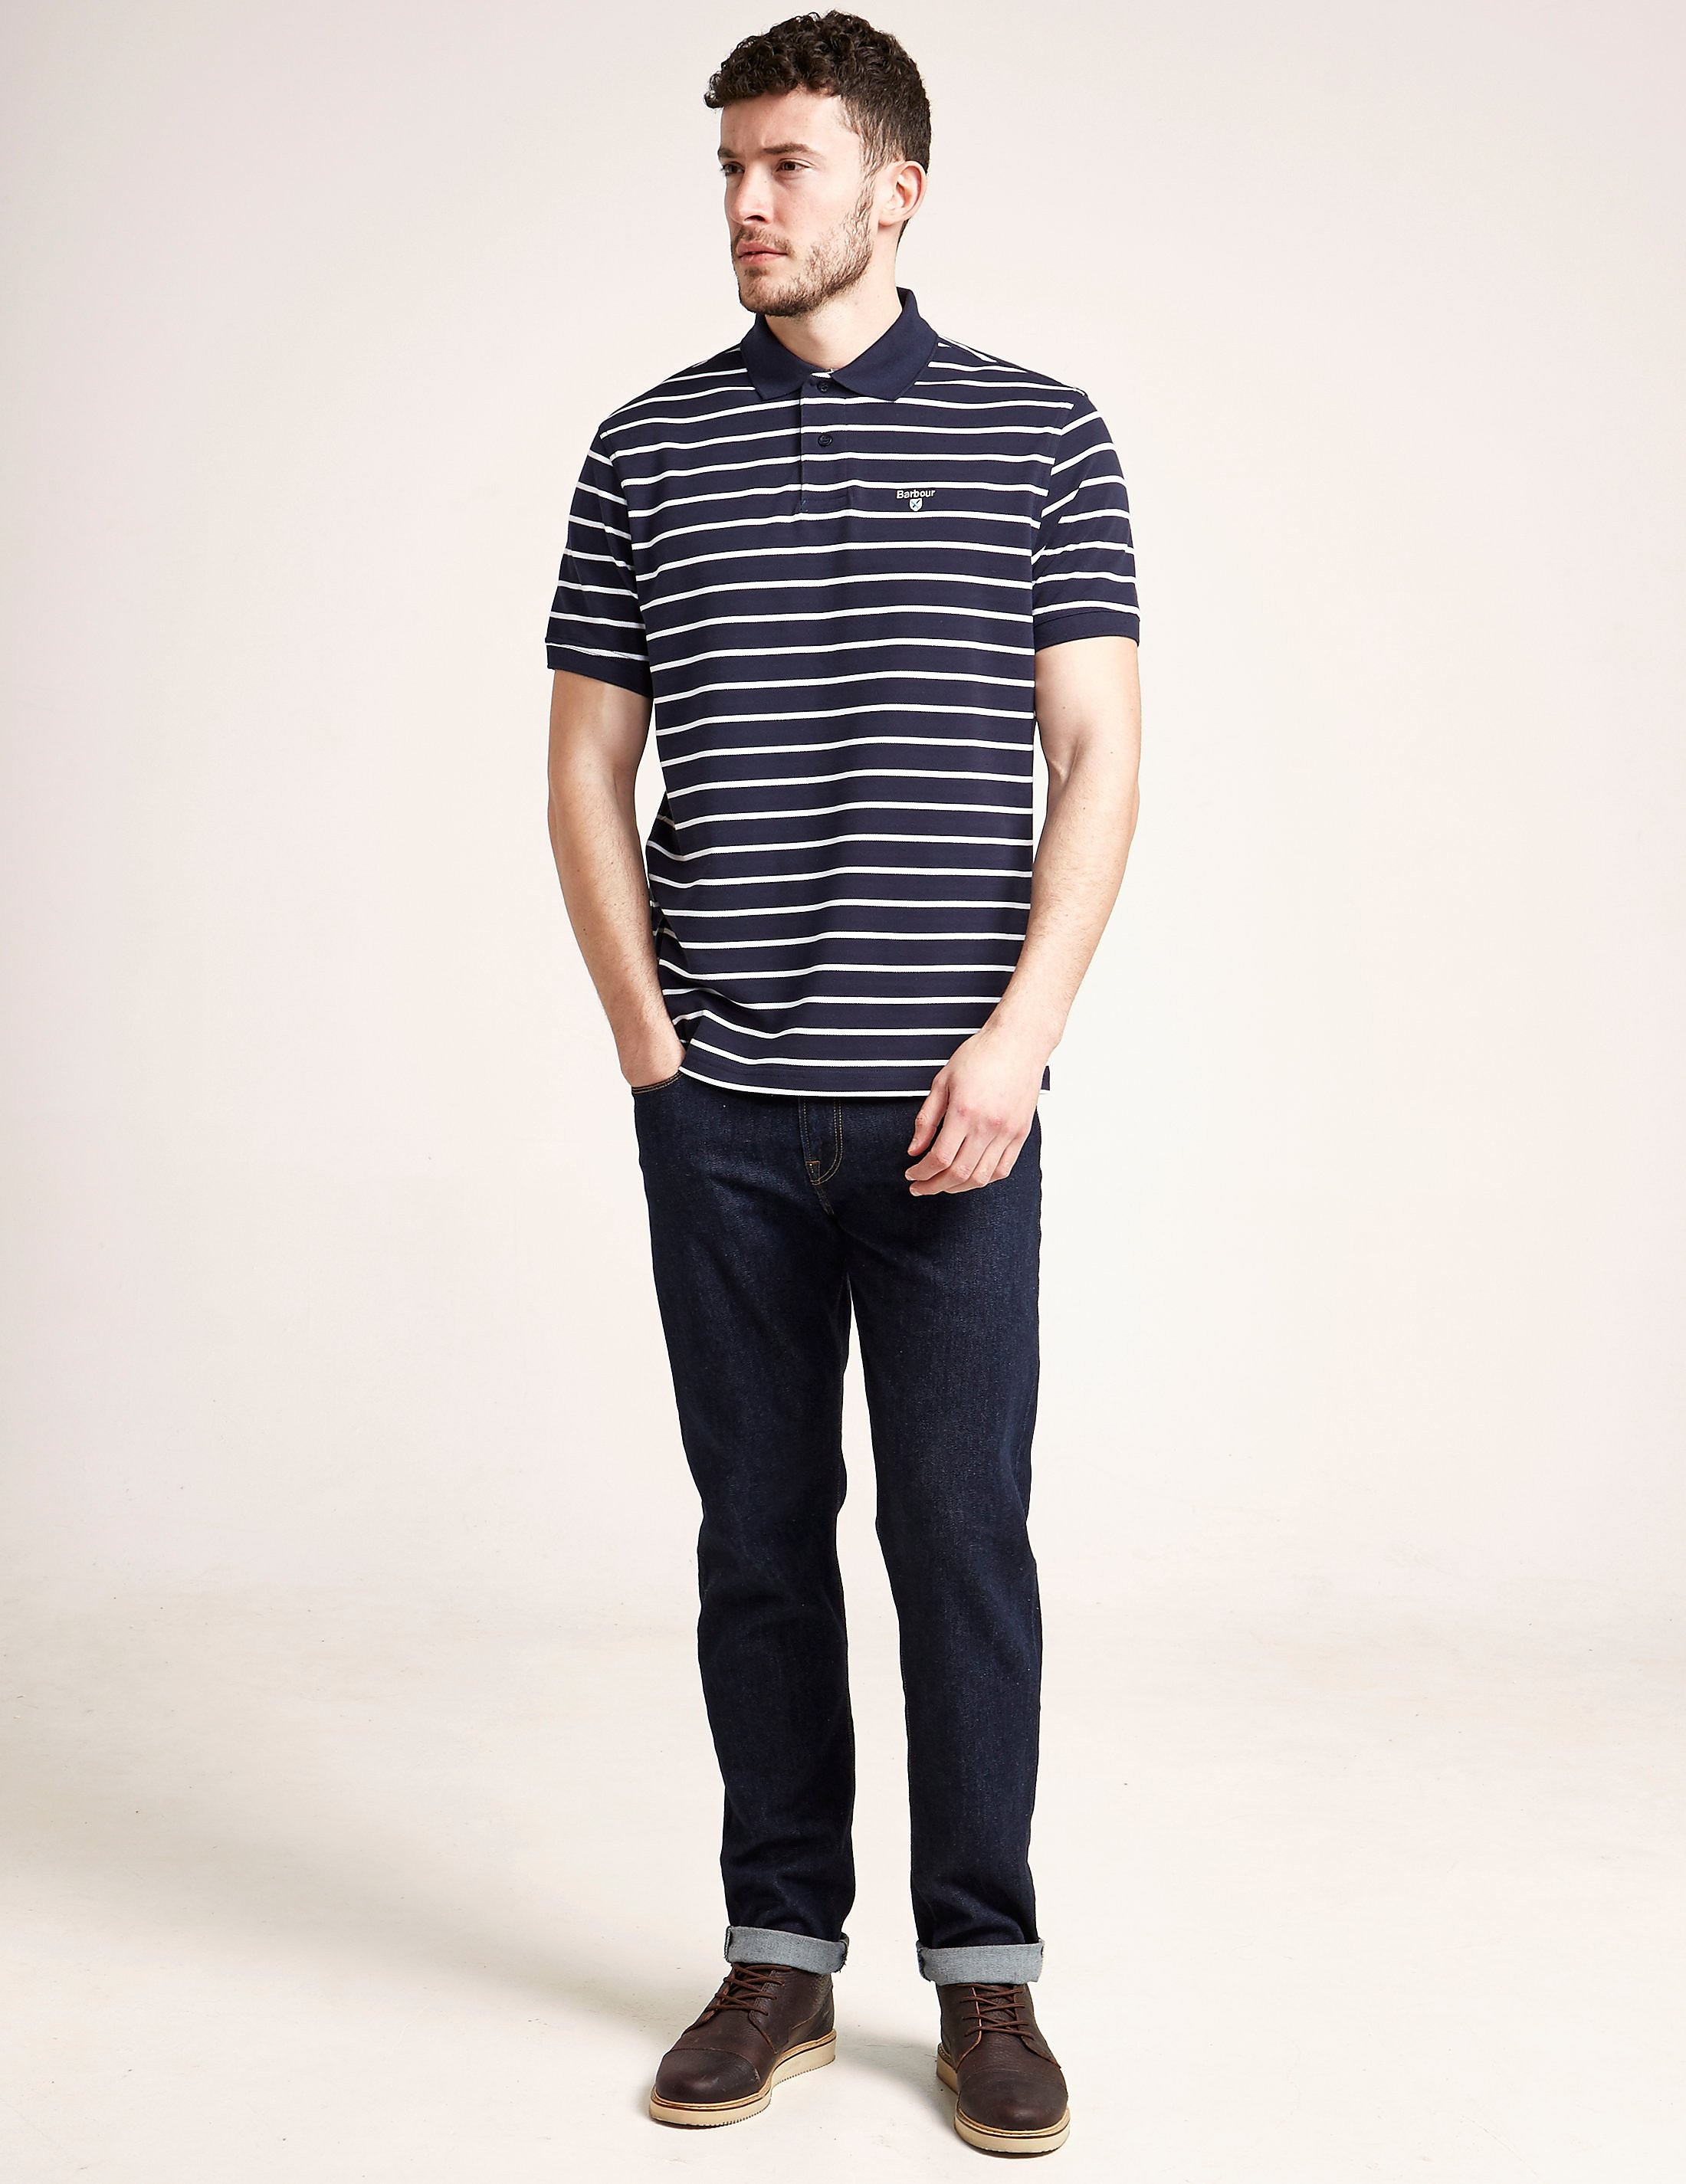 Barbour Stripe Short Sleeve Polo Shirt